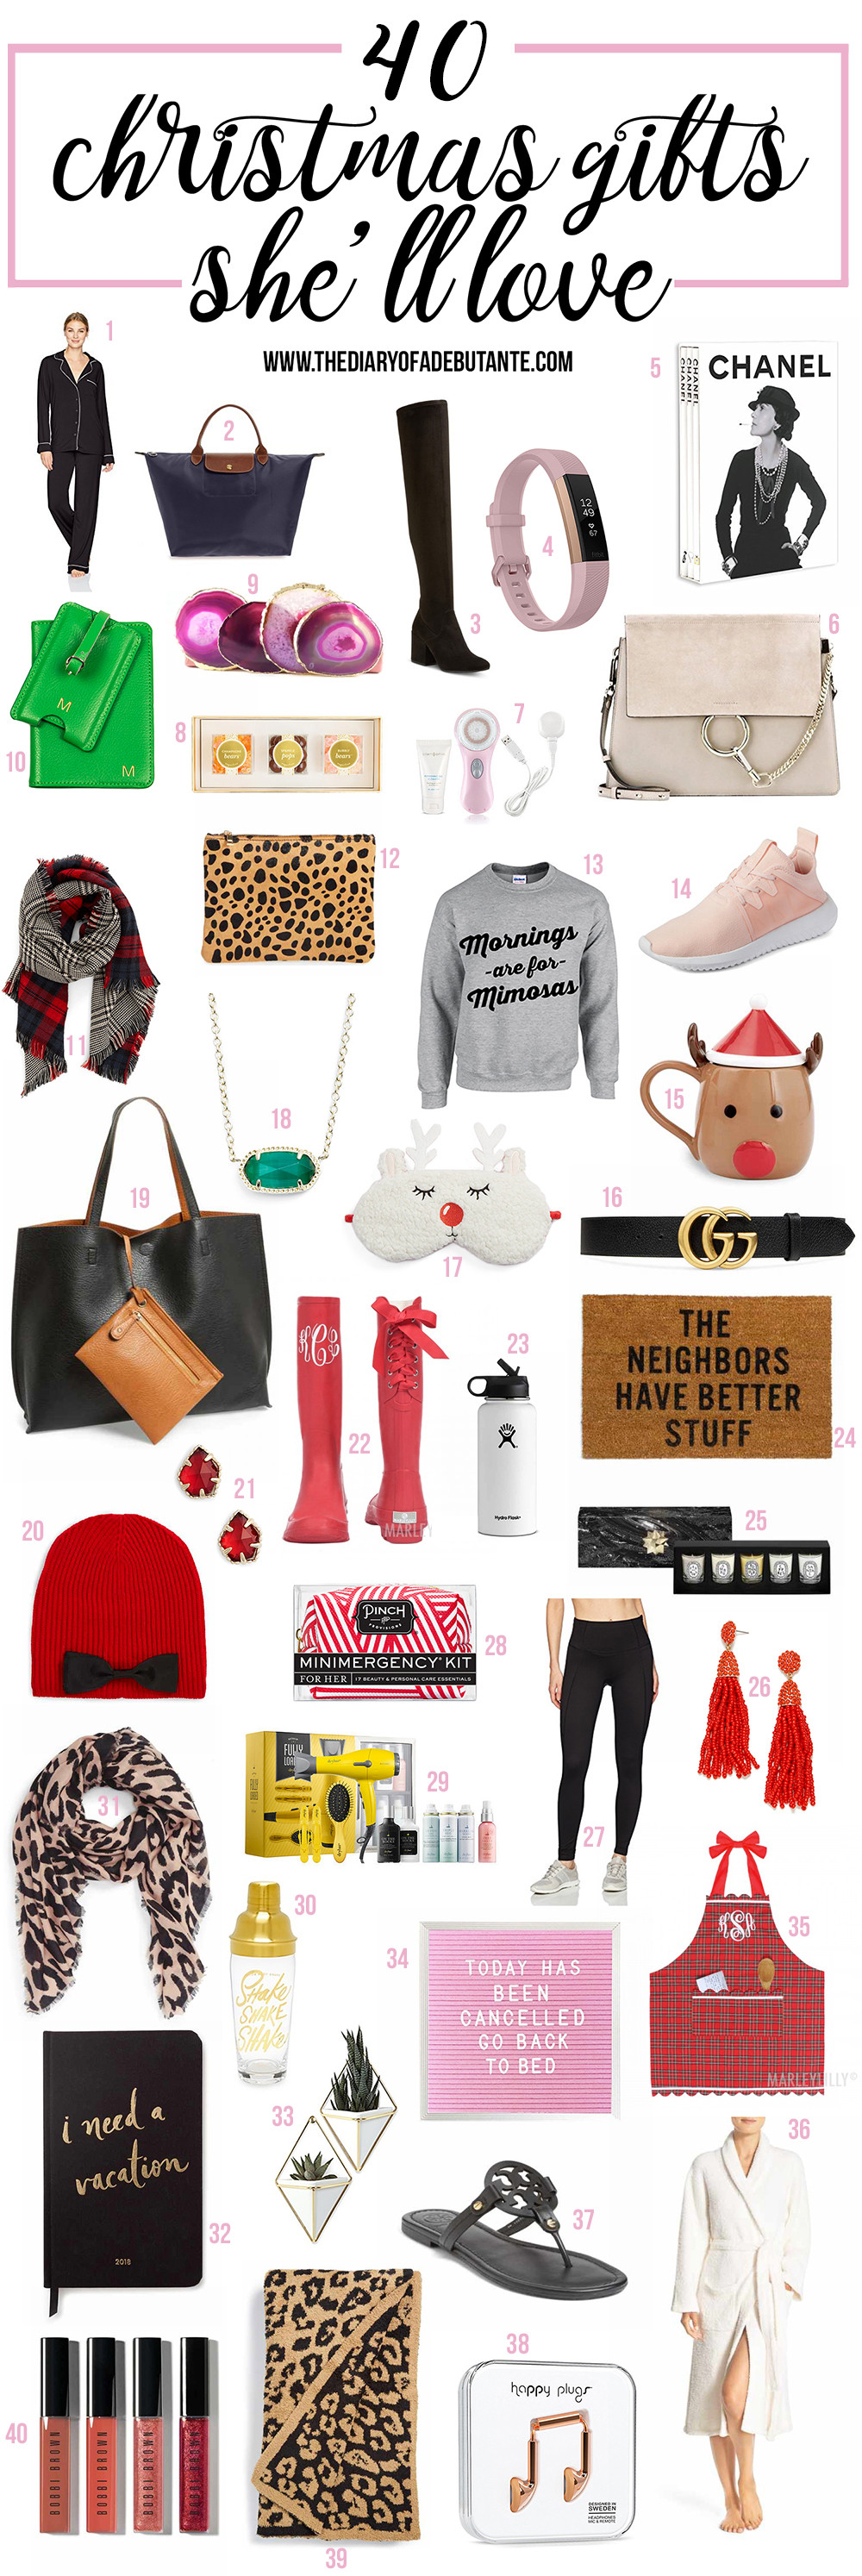 Best ideas about Xmas Gift Ideas For Girlfriend . Save or Pin Cool Gift Ideas for Girlfriend Mom or BFF this Holiday Now.